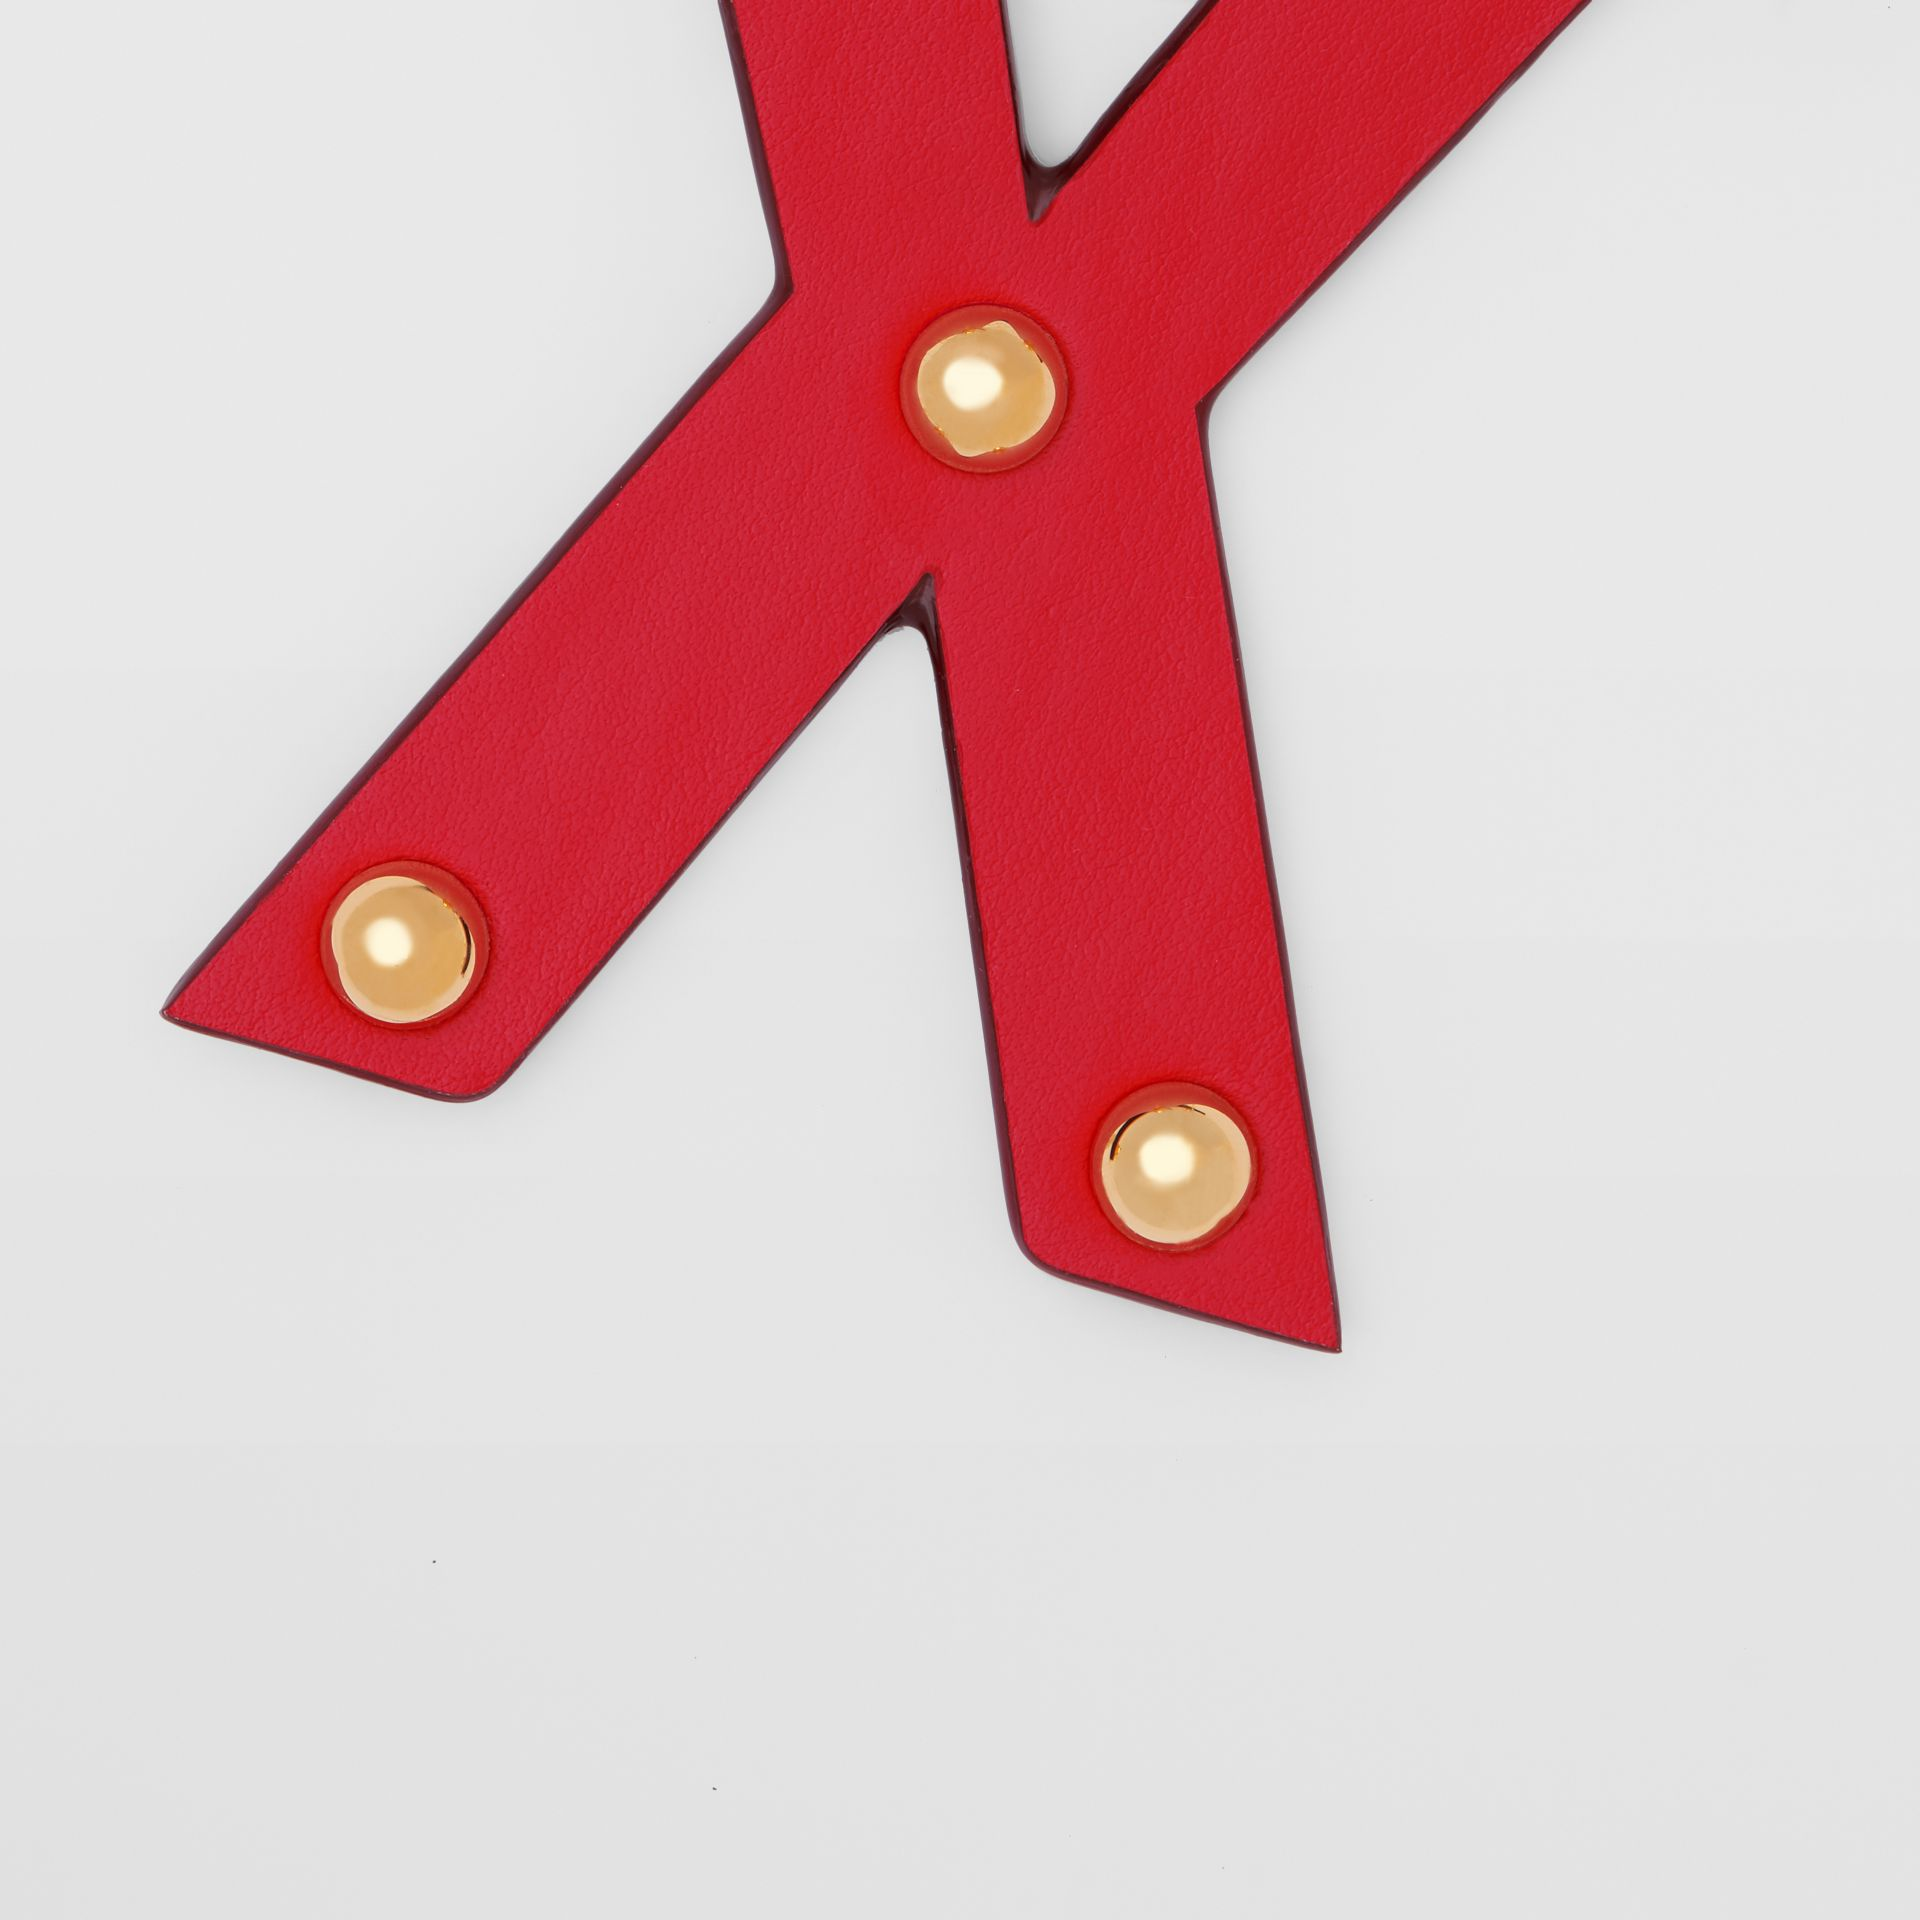 'X' Studded Leather Alphabet Charm in Red/light Gold - Women | Burberry - gallery image 1